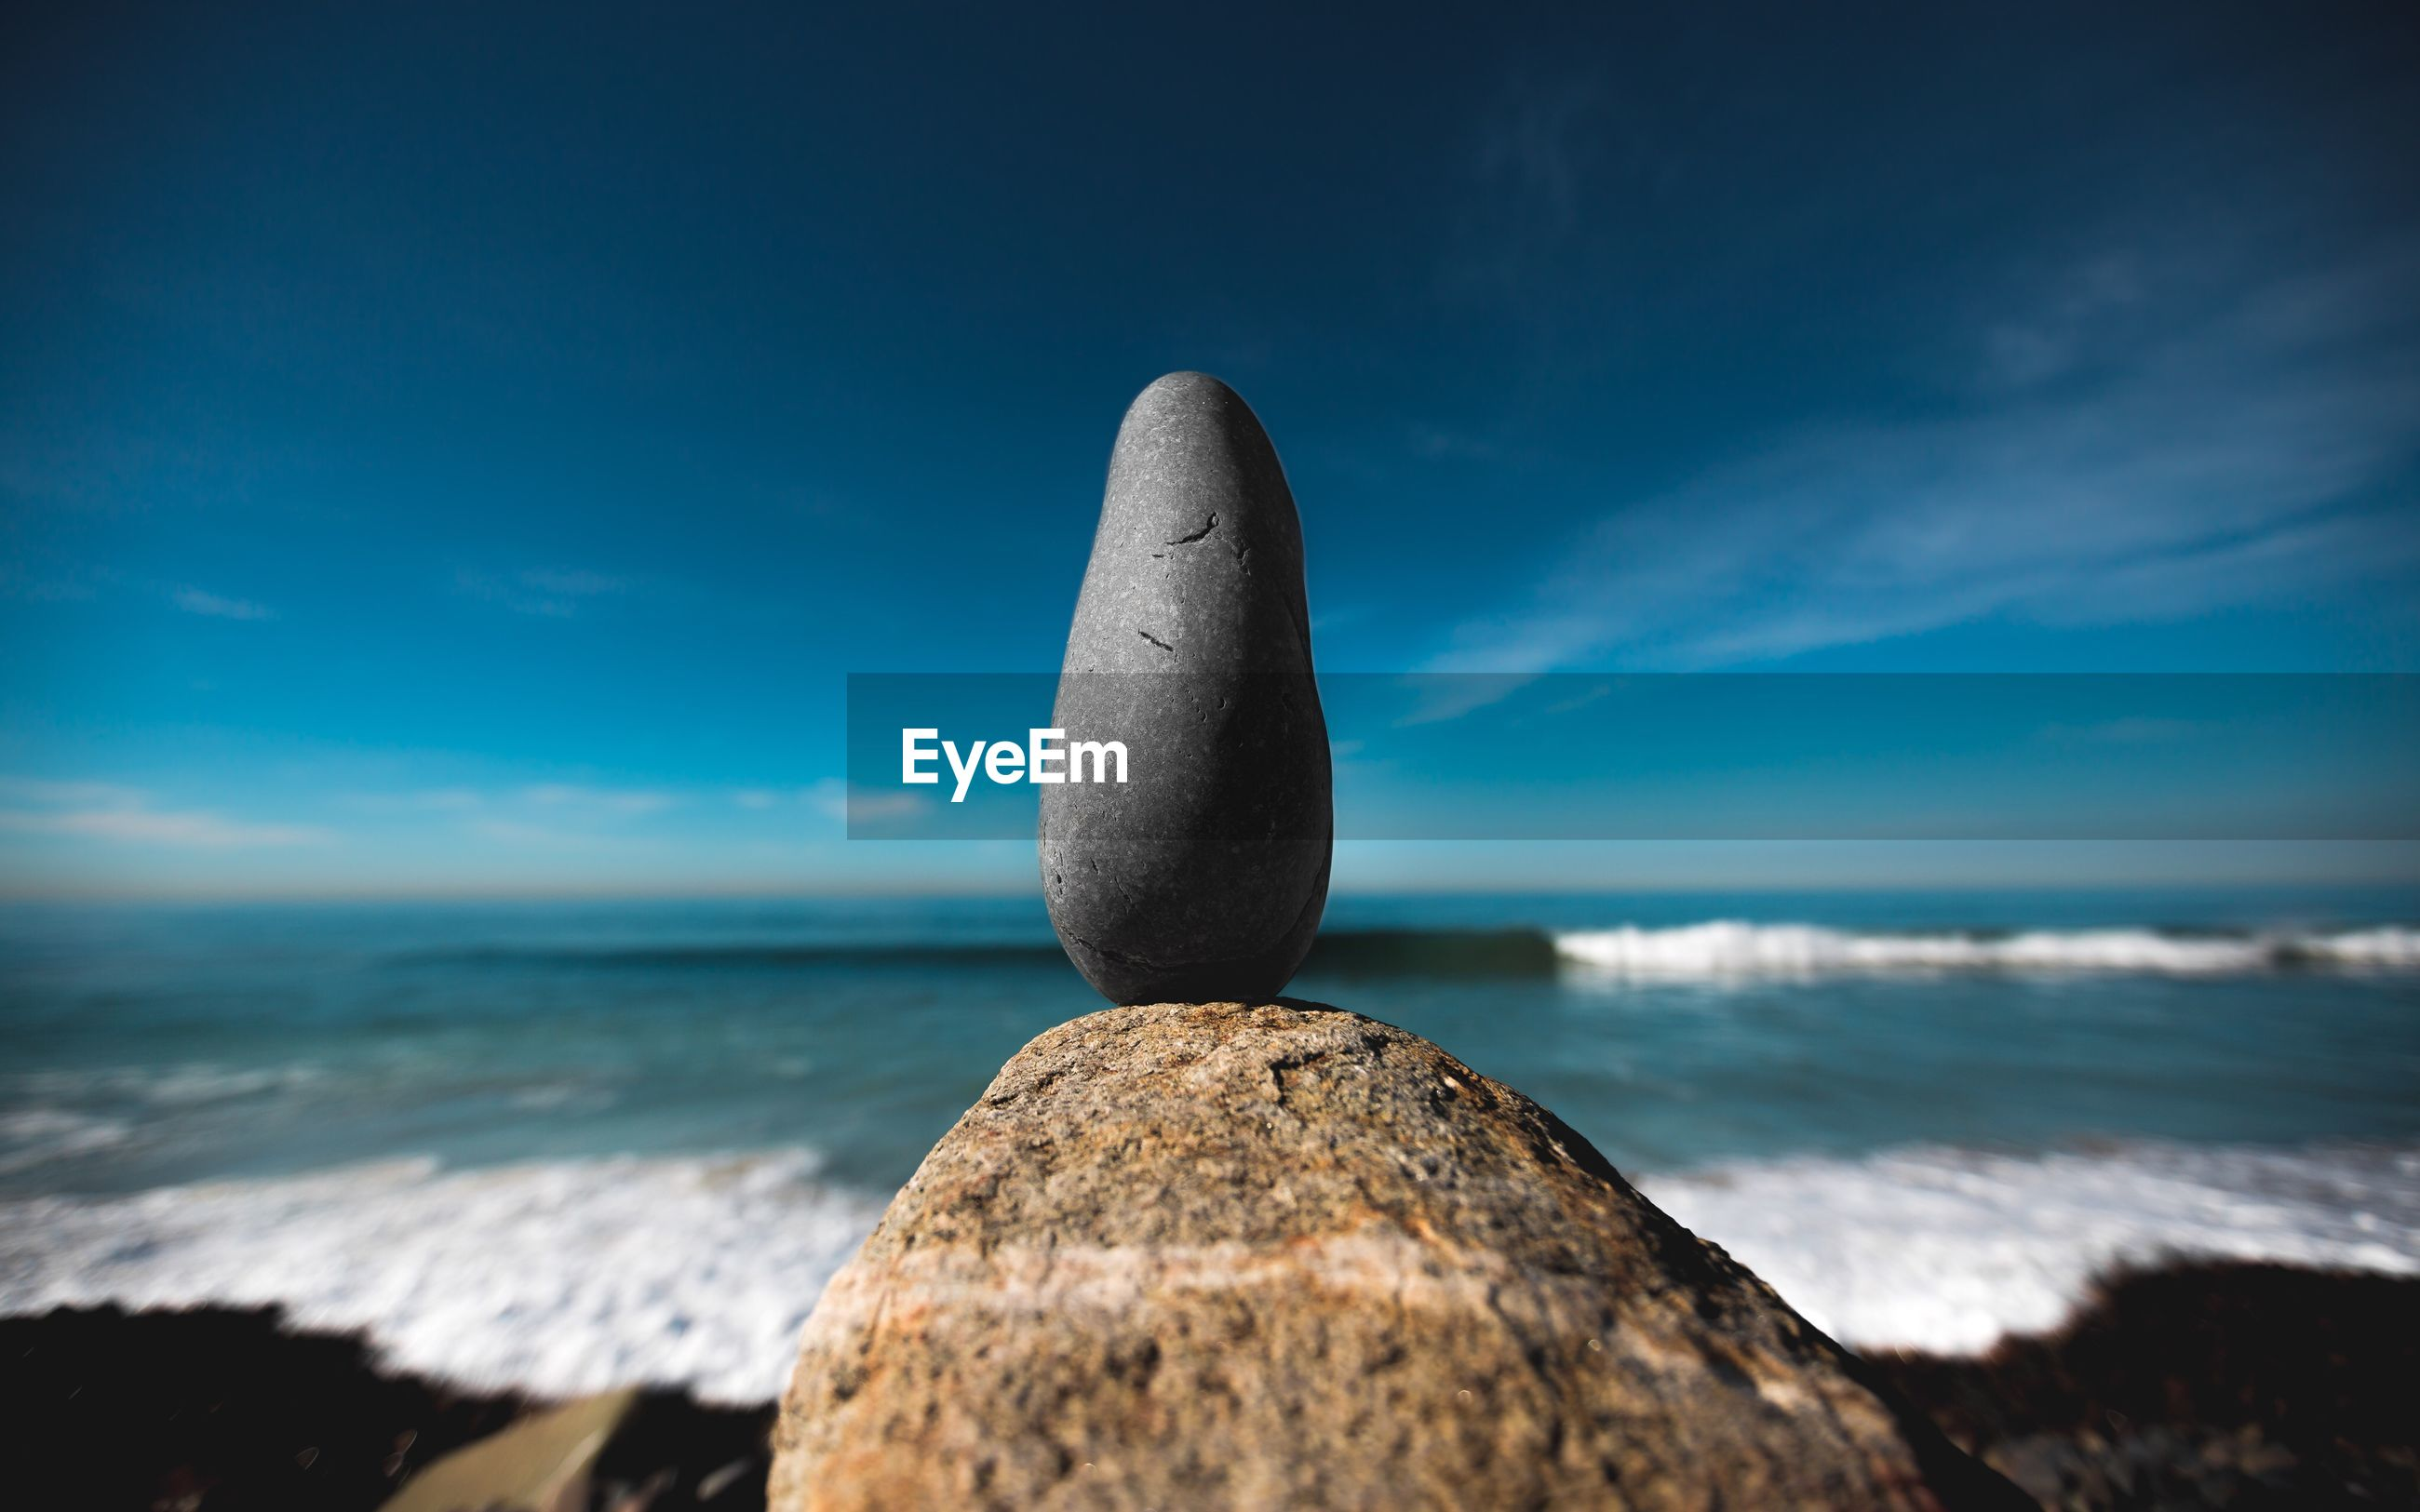 Close-up of rock on beach against blue sky